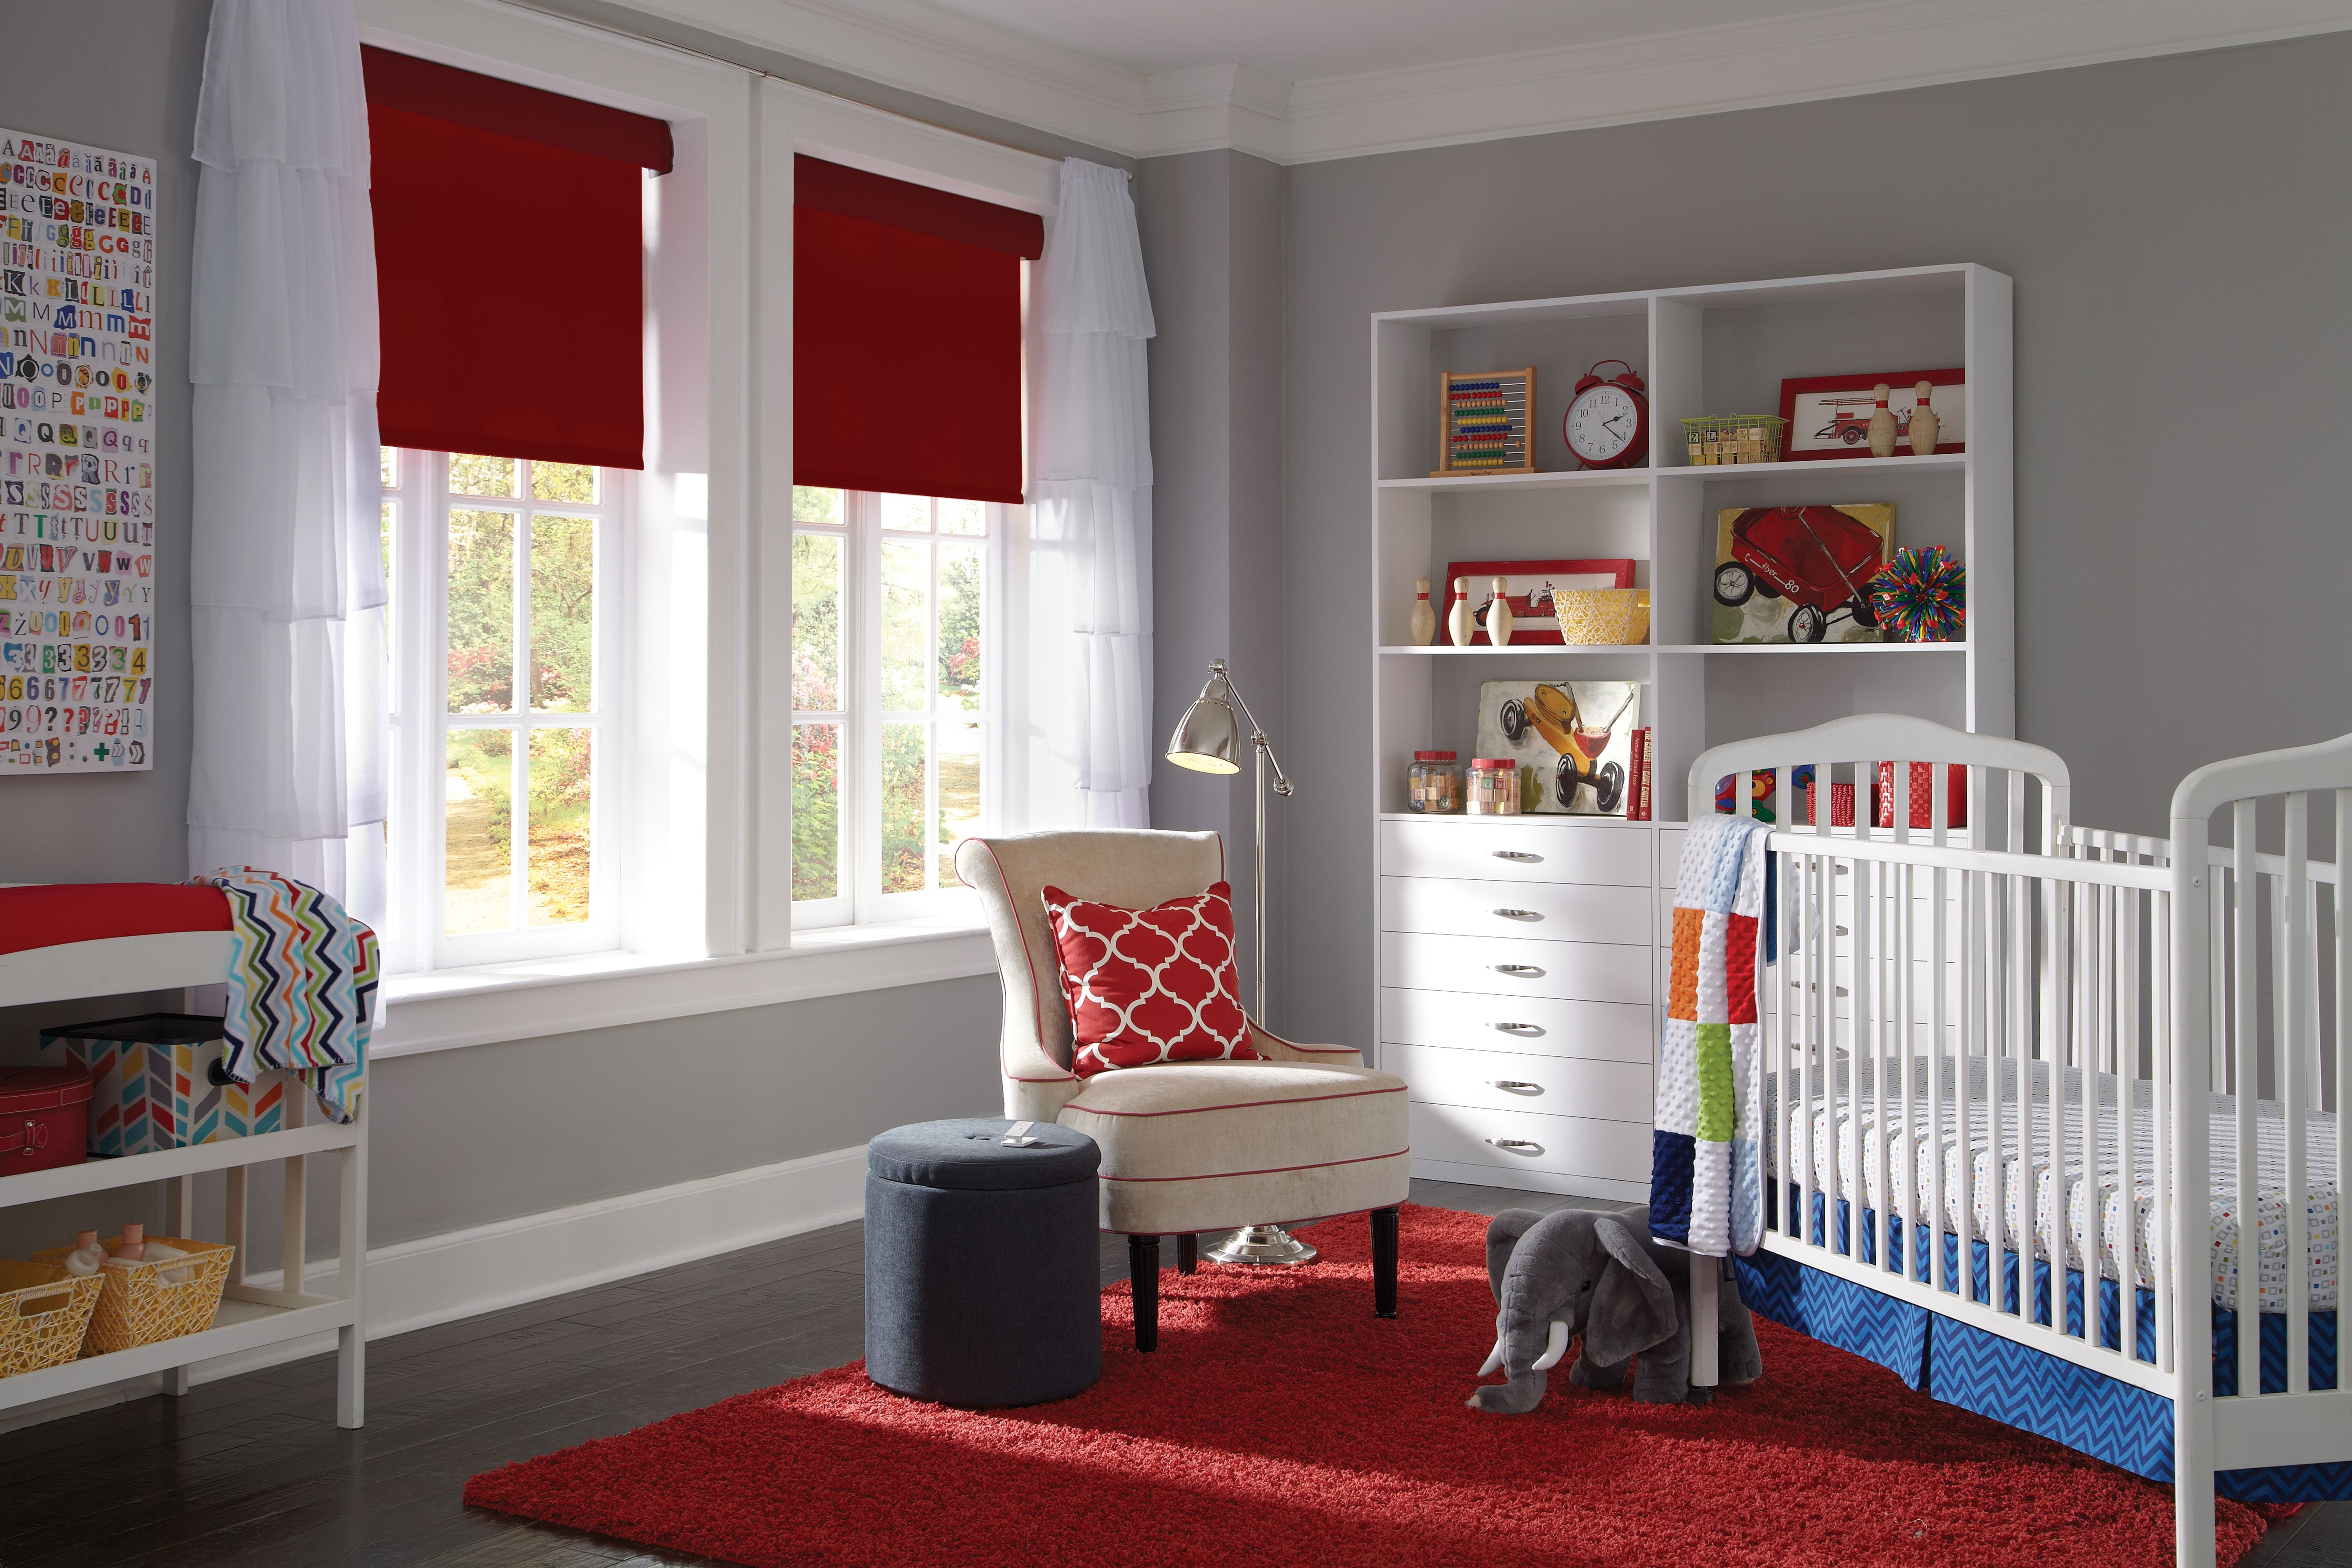 Window coverings of idaho  stylish childfriendly shades every parent should consider